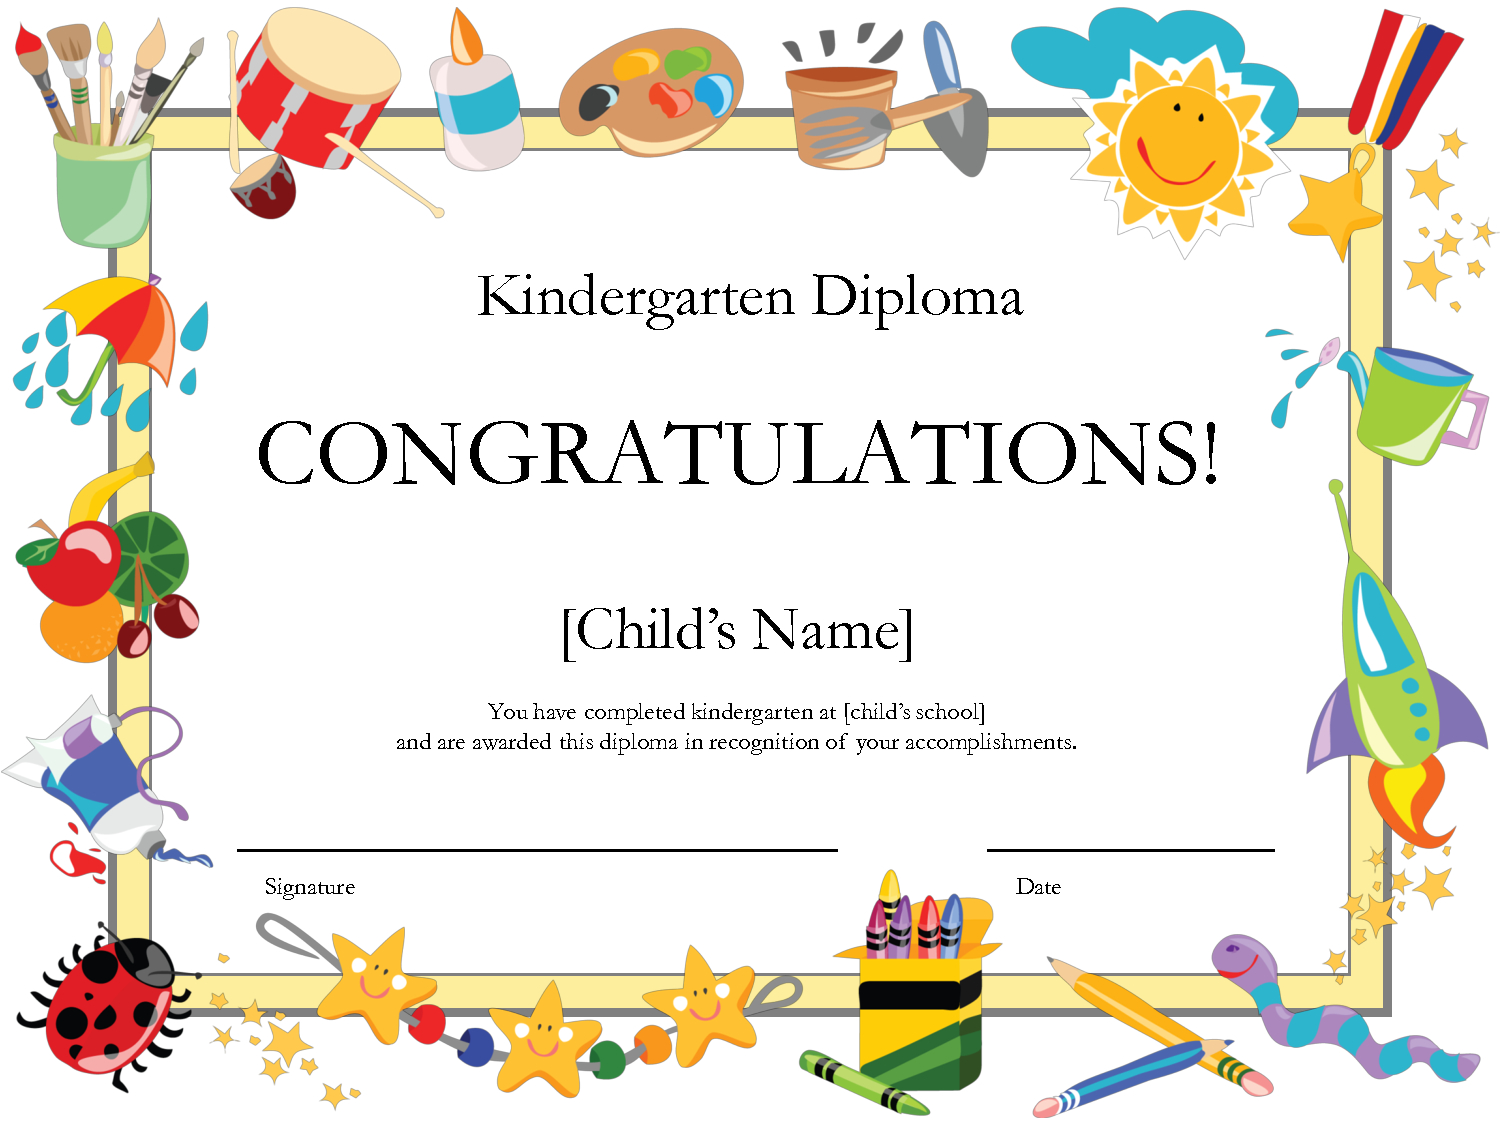 Free Printable Kindergarten Diplomaprintshowergames 0Megipu4 - Free Printable Honor Roll Certificates Kids